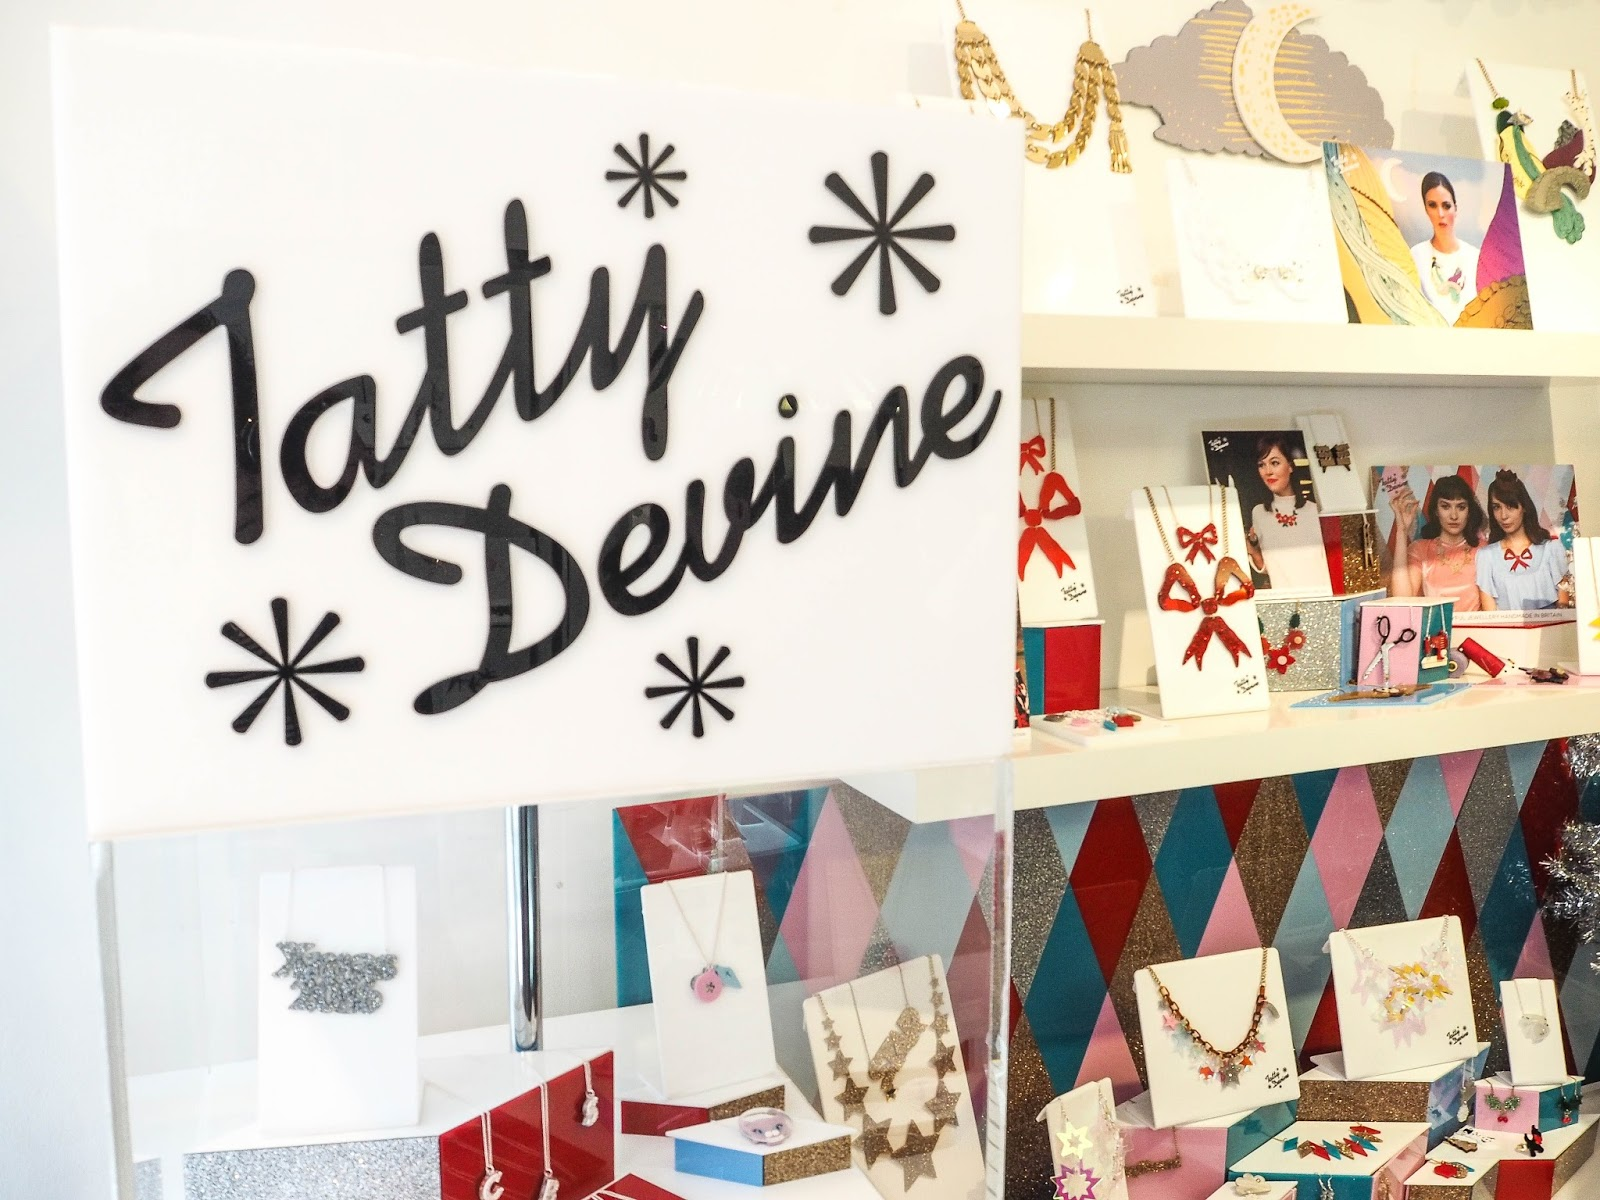 Tatty Devine store, Covent Garden